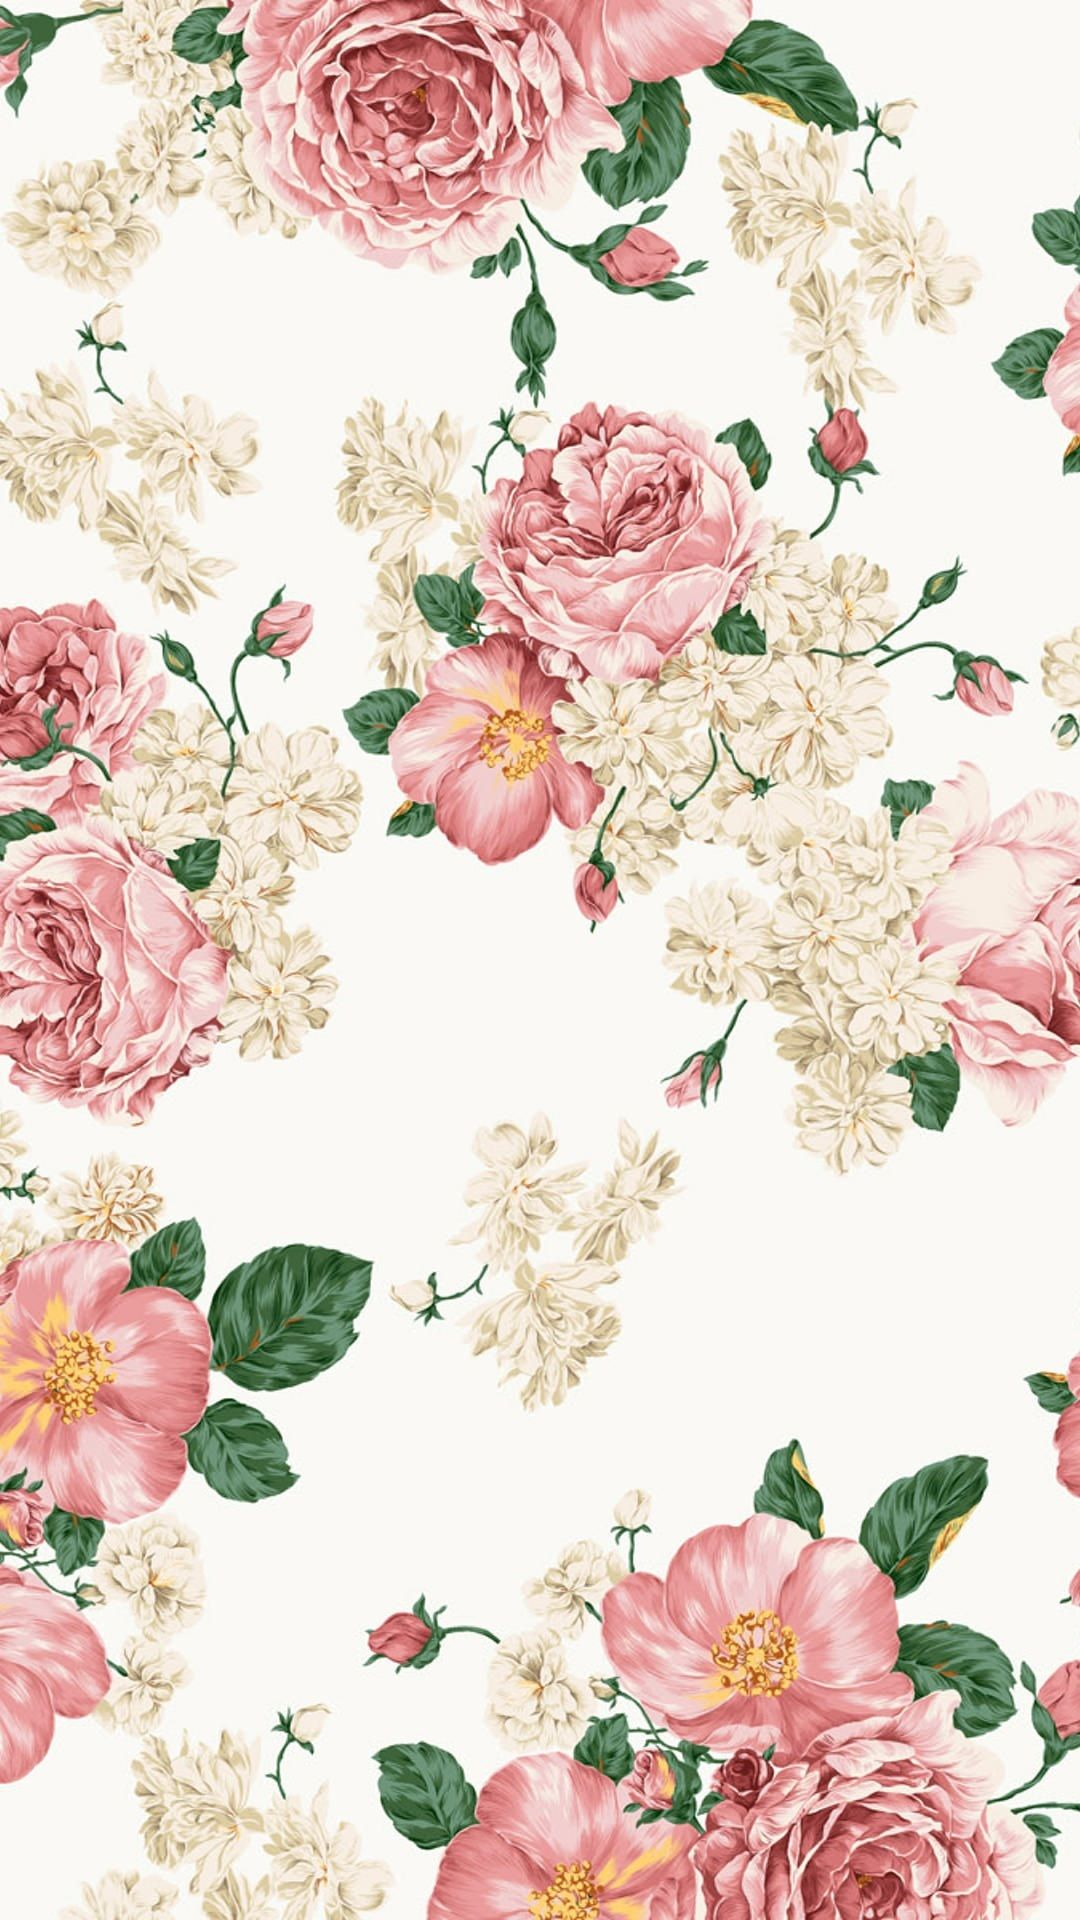 Painting of roses wallpaper Floral wallpaper iphone